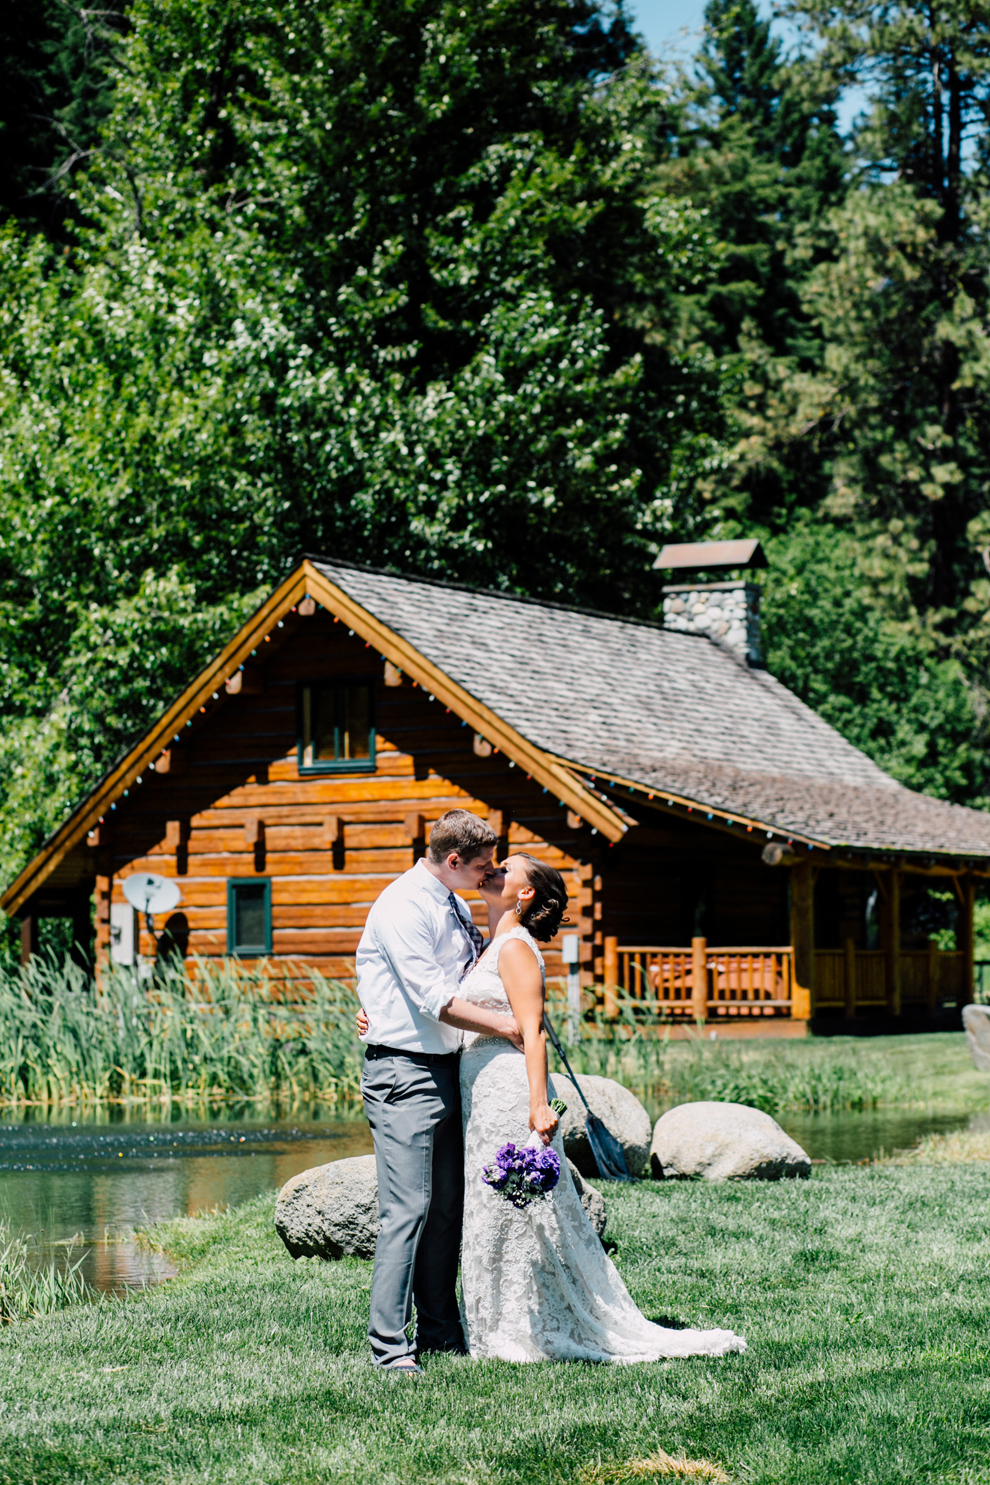 031-leavenworth-mountain-springs-lodge-wedding-karena-saul-katheryn-moran-photography.jpg